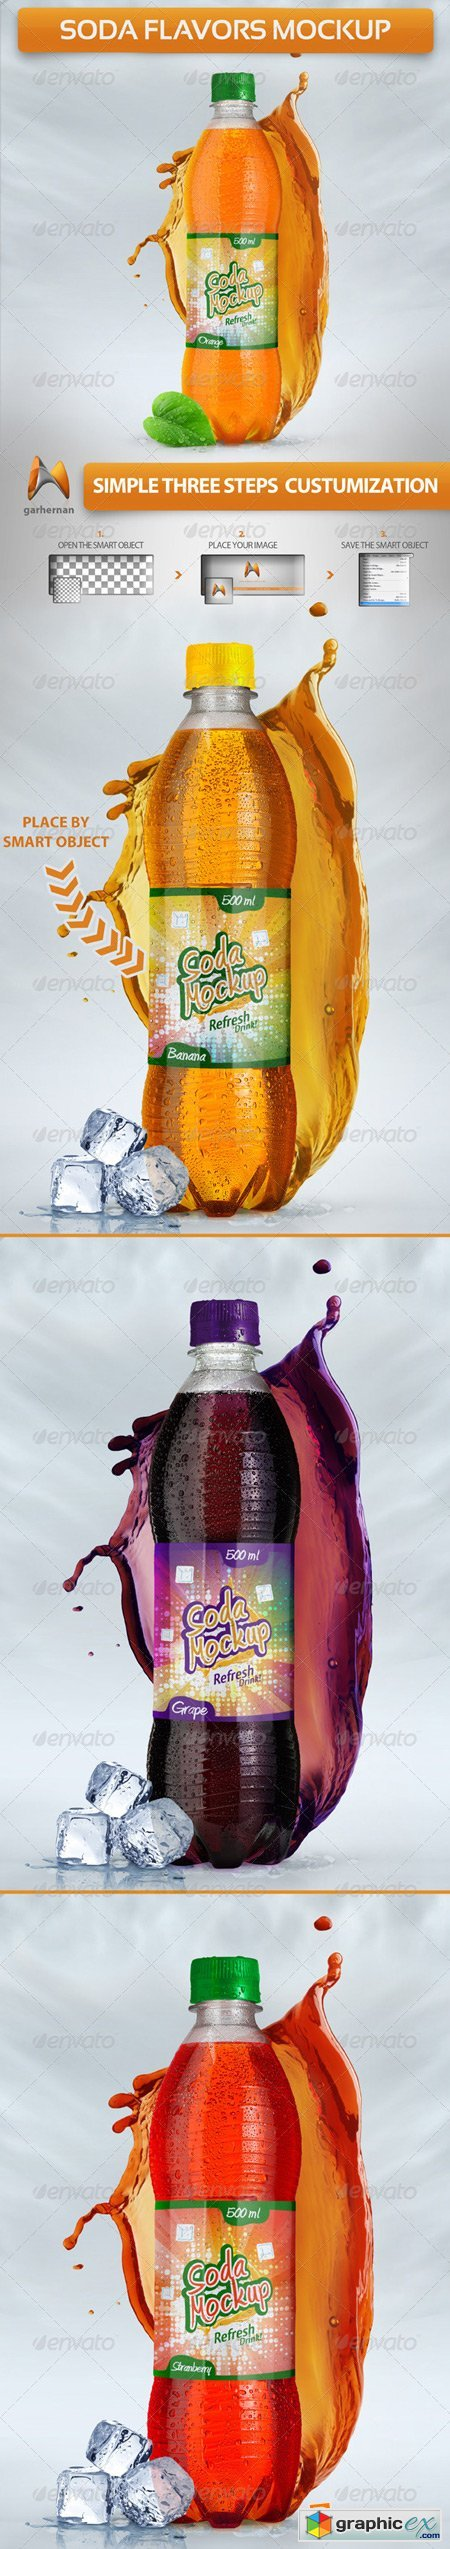 Soda Flavors Mock-Up 5125032